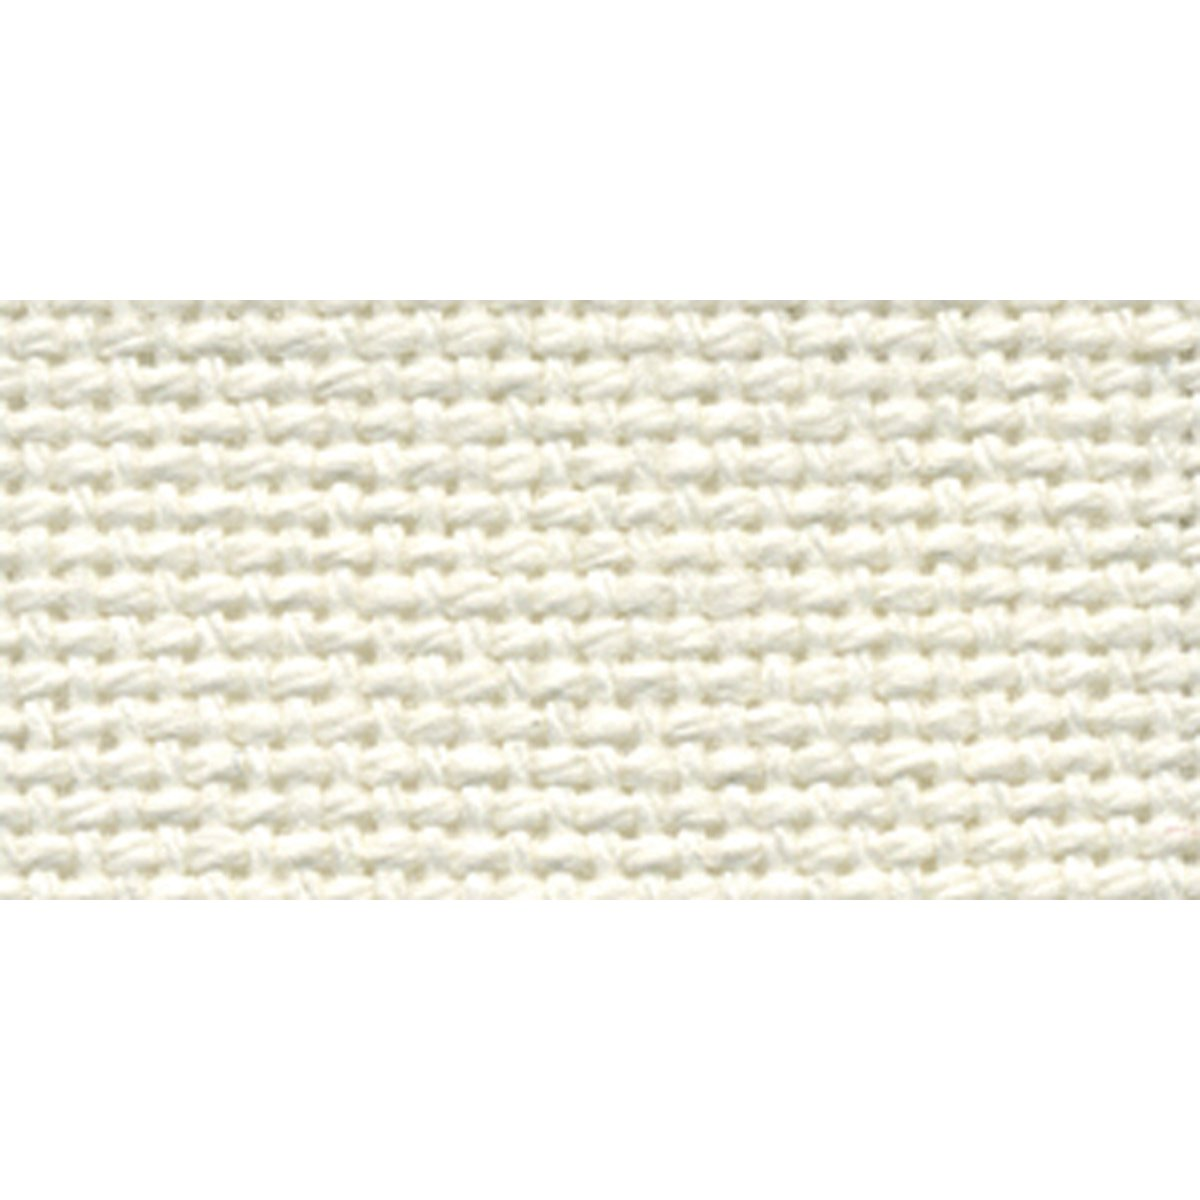 DMC MO0237-0322 Charles Craft 20 by 24-Inch Evenweave Monaco Aida Cloth, Antique White, 28 Count